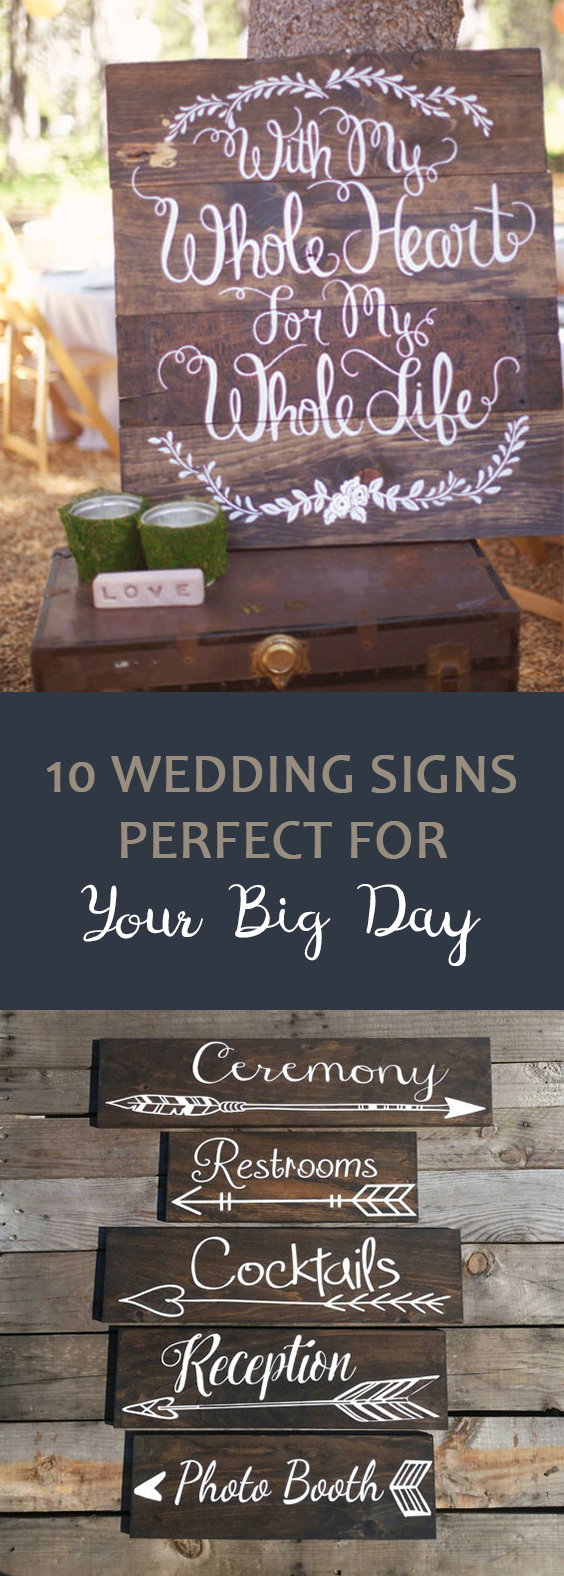 Wedding signs, wedding DIYs, wedding DIY, wedding DIY projects, homemade wedding signs, popular pin, DIY wedding, home wedding, wedding DIY, wedding decor, decorating for your wedding reception, unique wedding reception decor. #diywedding #weddingreception #wedding #weddingsigns #diyweddingsign #diydecor